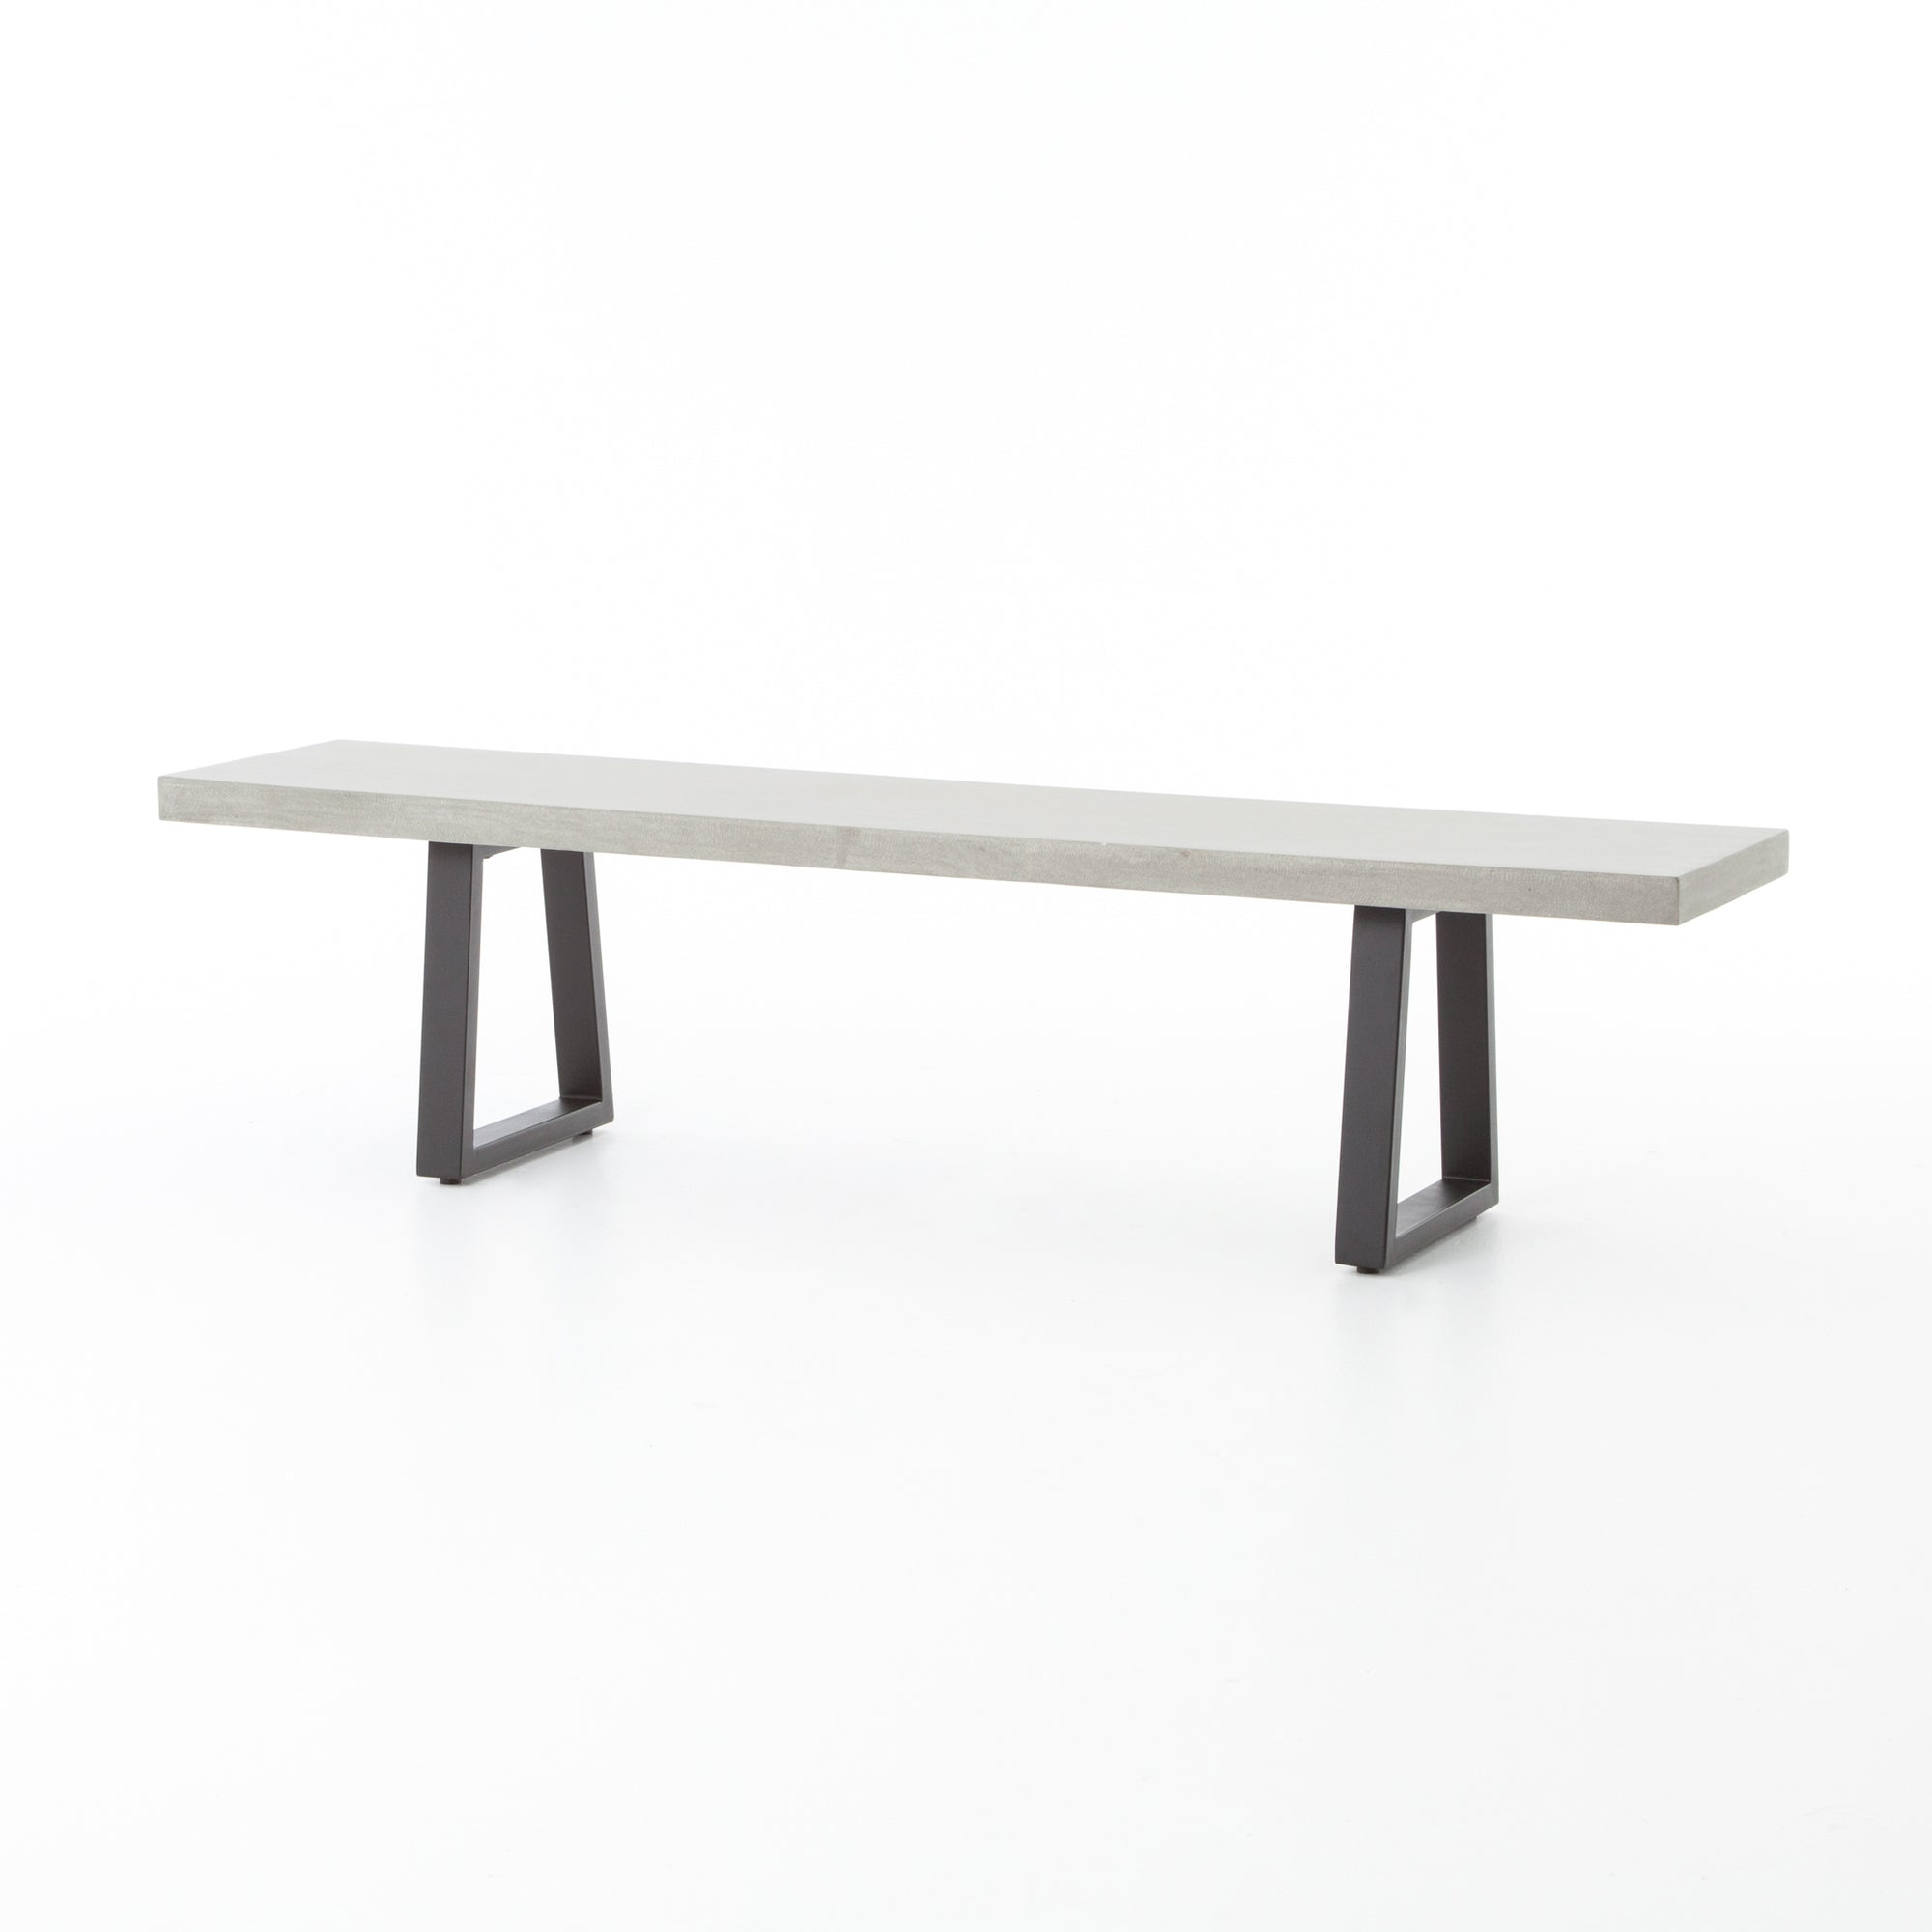 Cyrus Dining Bench - Rug & Weave